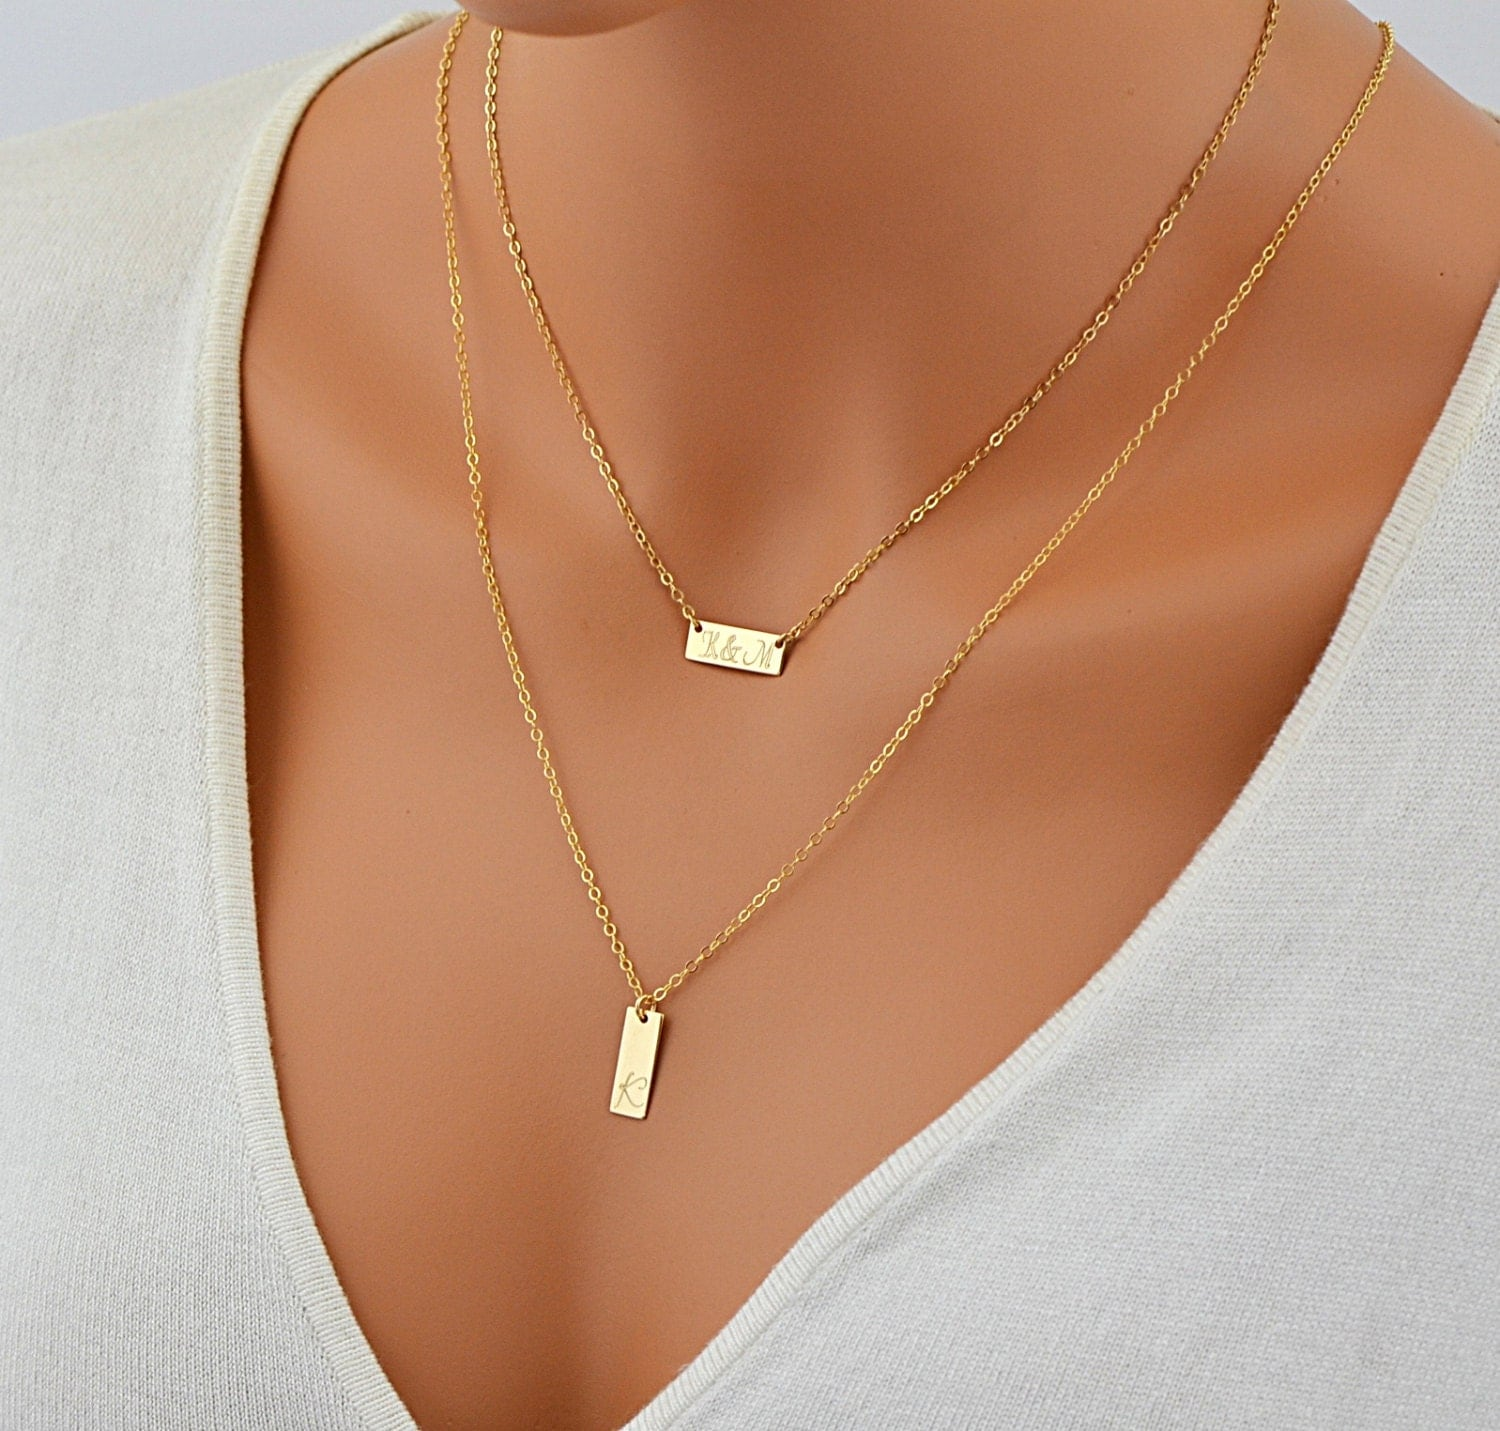 Layered Necklace Personalized Engraved Necklace Tag Charm